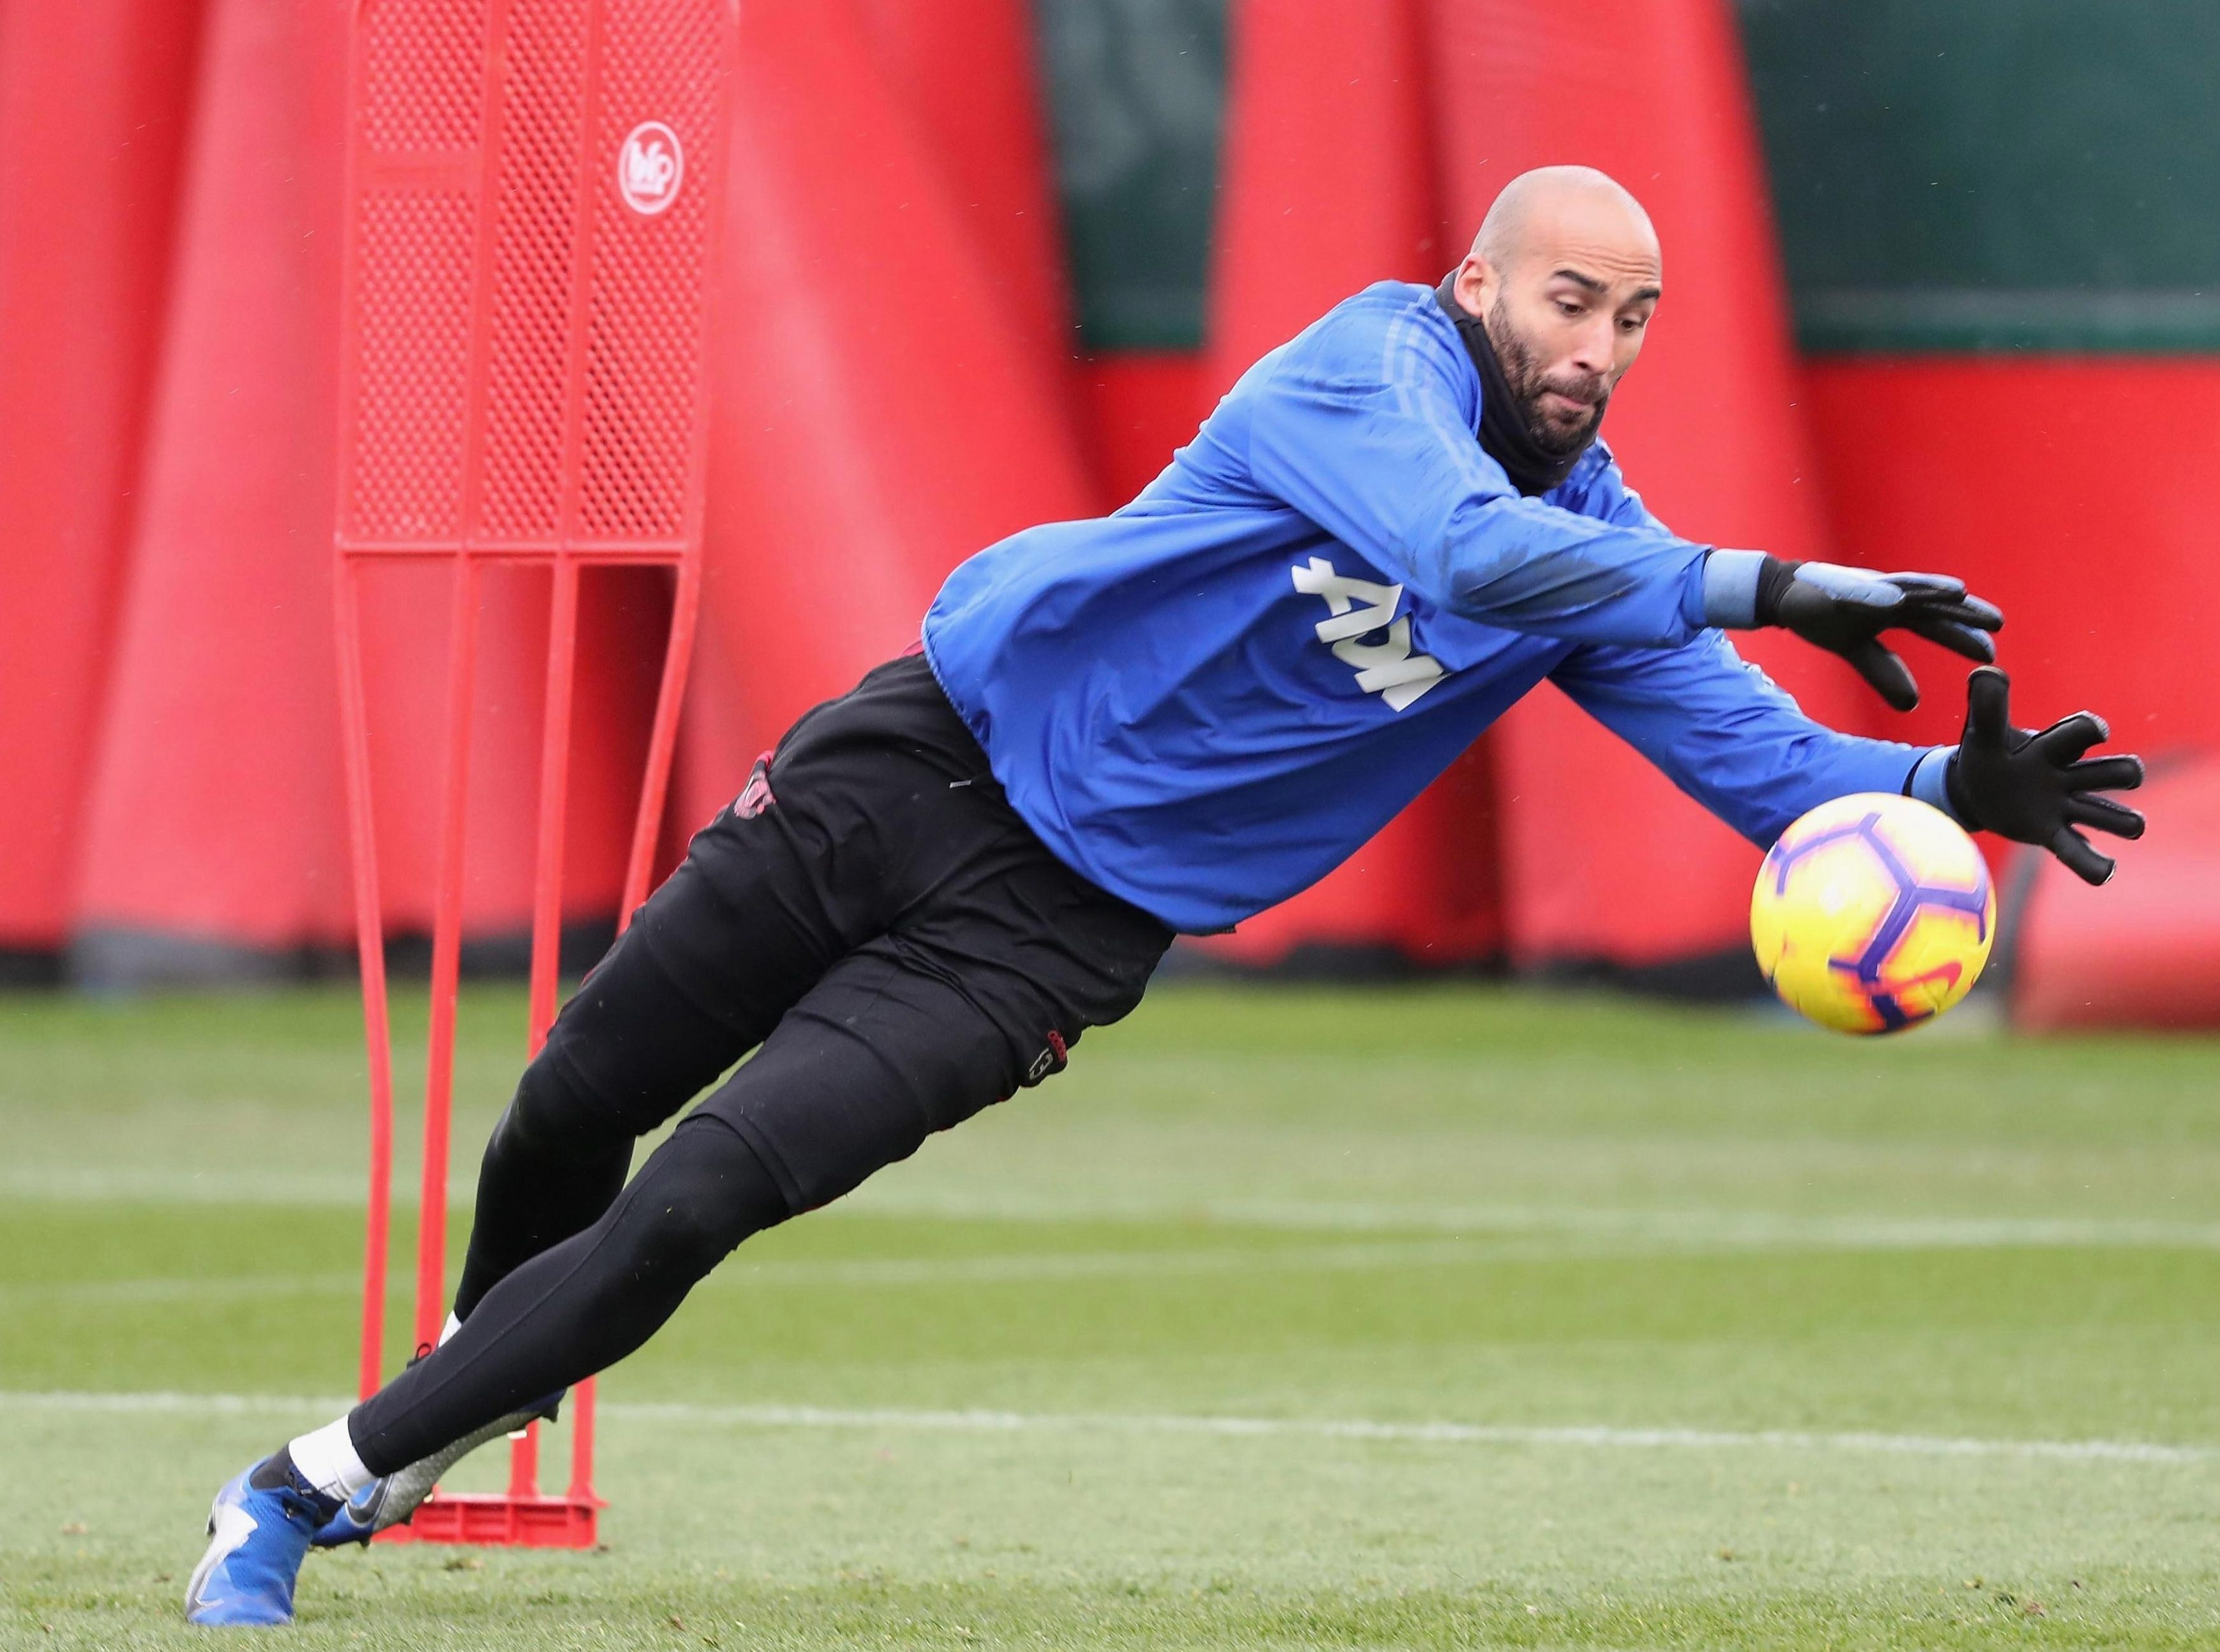 Veteran Lee Grant, 35, who joined United in the summer from relegated Stoke, is one of the keepers Paul Woolston will hope to overhaul in the pecking order if his signing is confirmed